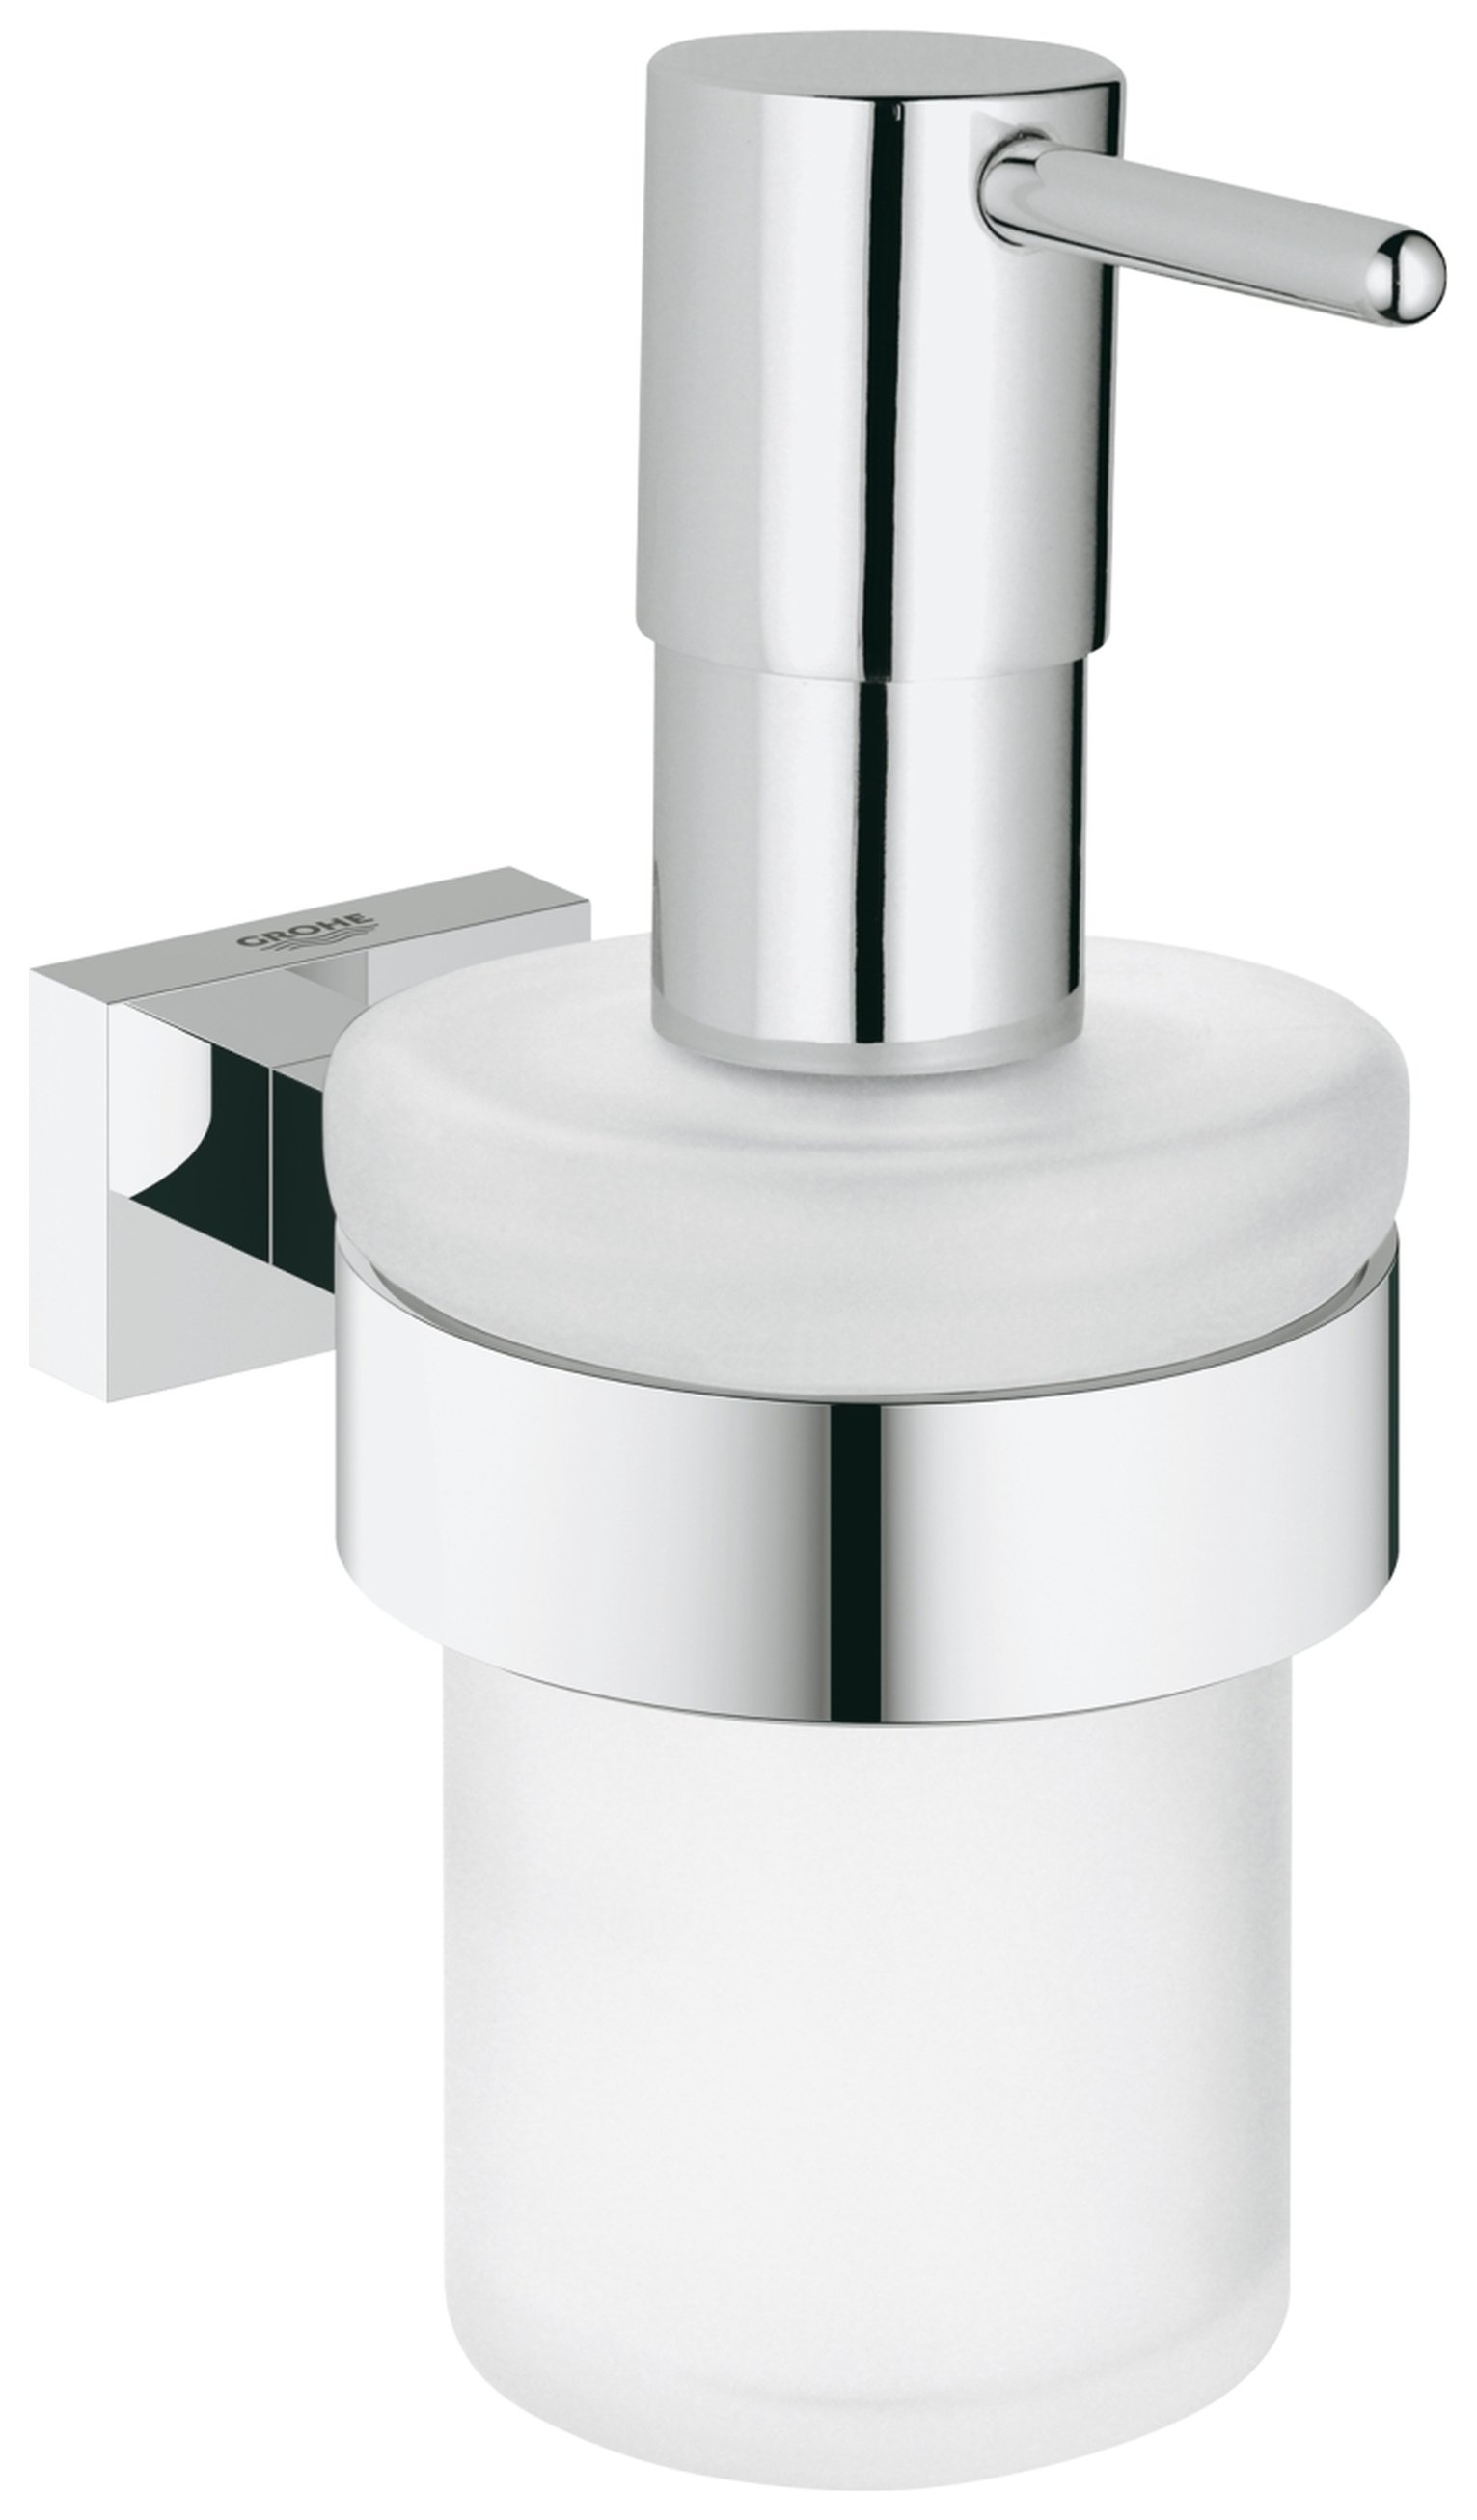 Image of Grohe Essentials Cube Soap Dispenser with Holder